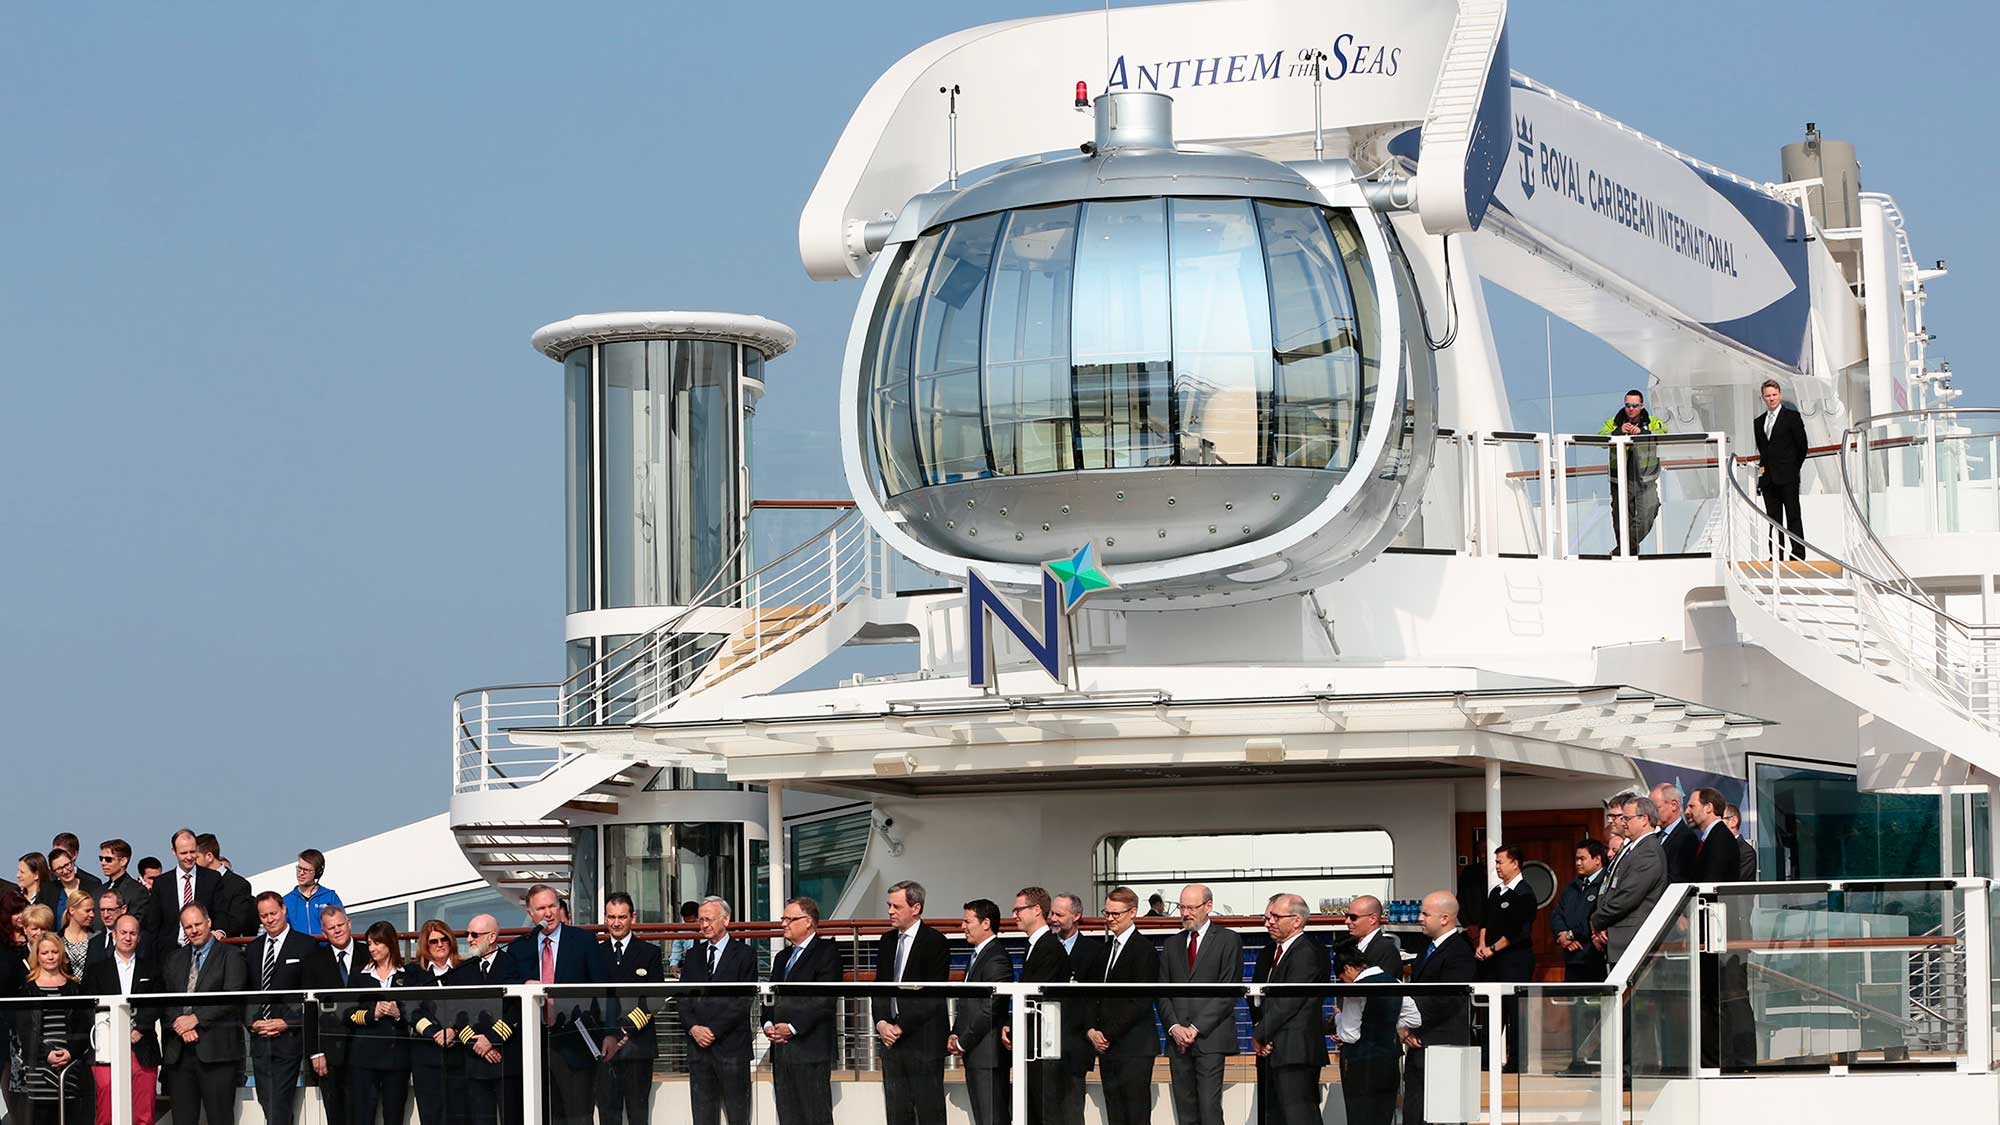 Royal Caribbean Takes Delivery Of Anthem Of The Seas